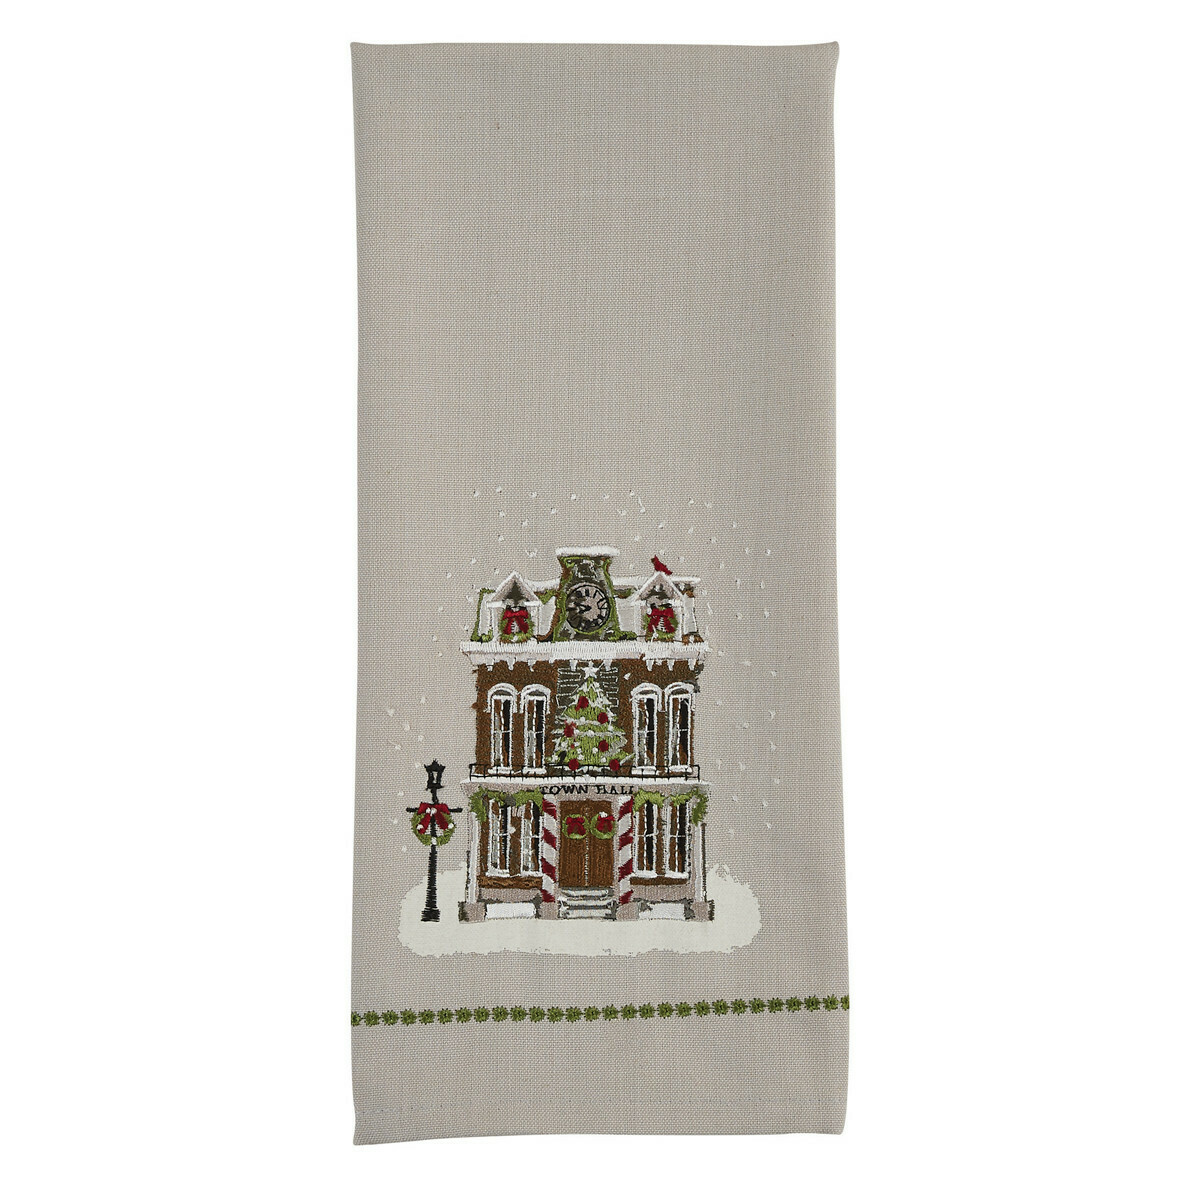 Town Hall Printed & Embroidered Dishtowel